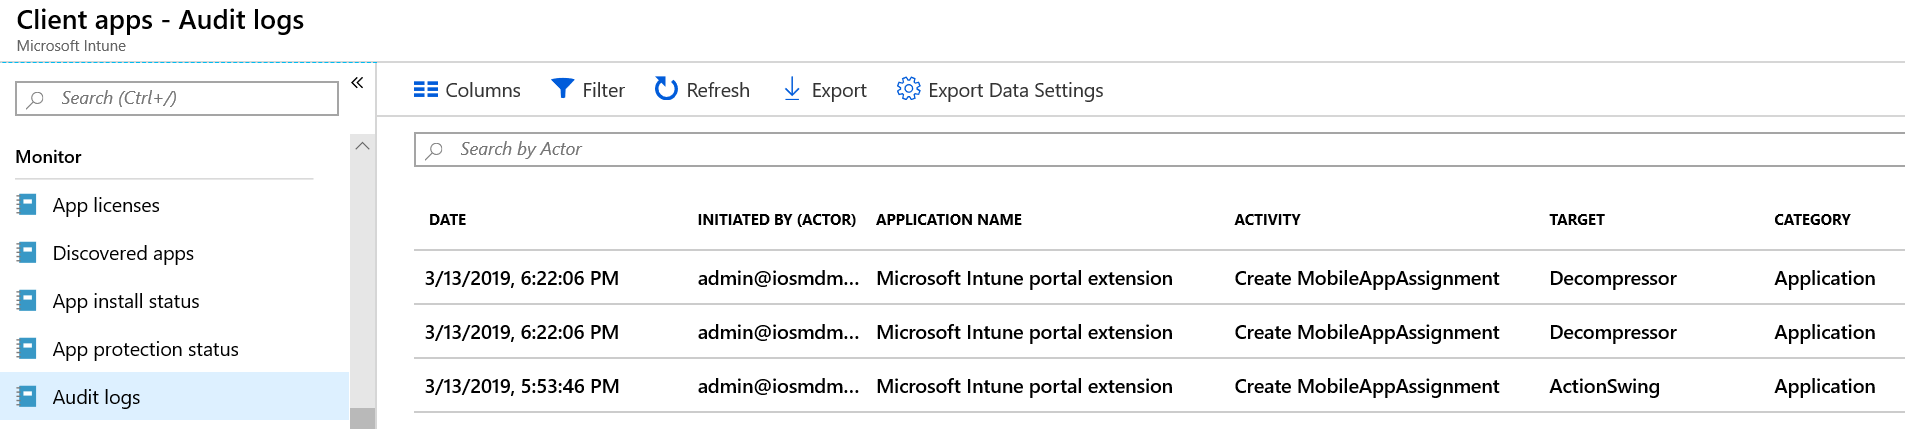 Audit changes and events in Microsoft Intune - Azure | Microsoft Docs